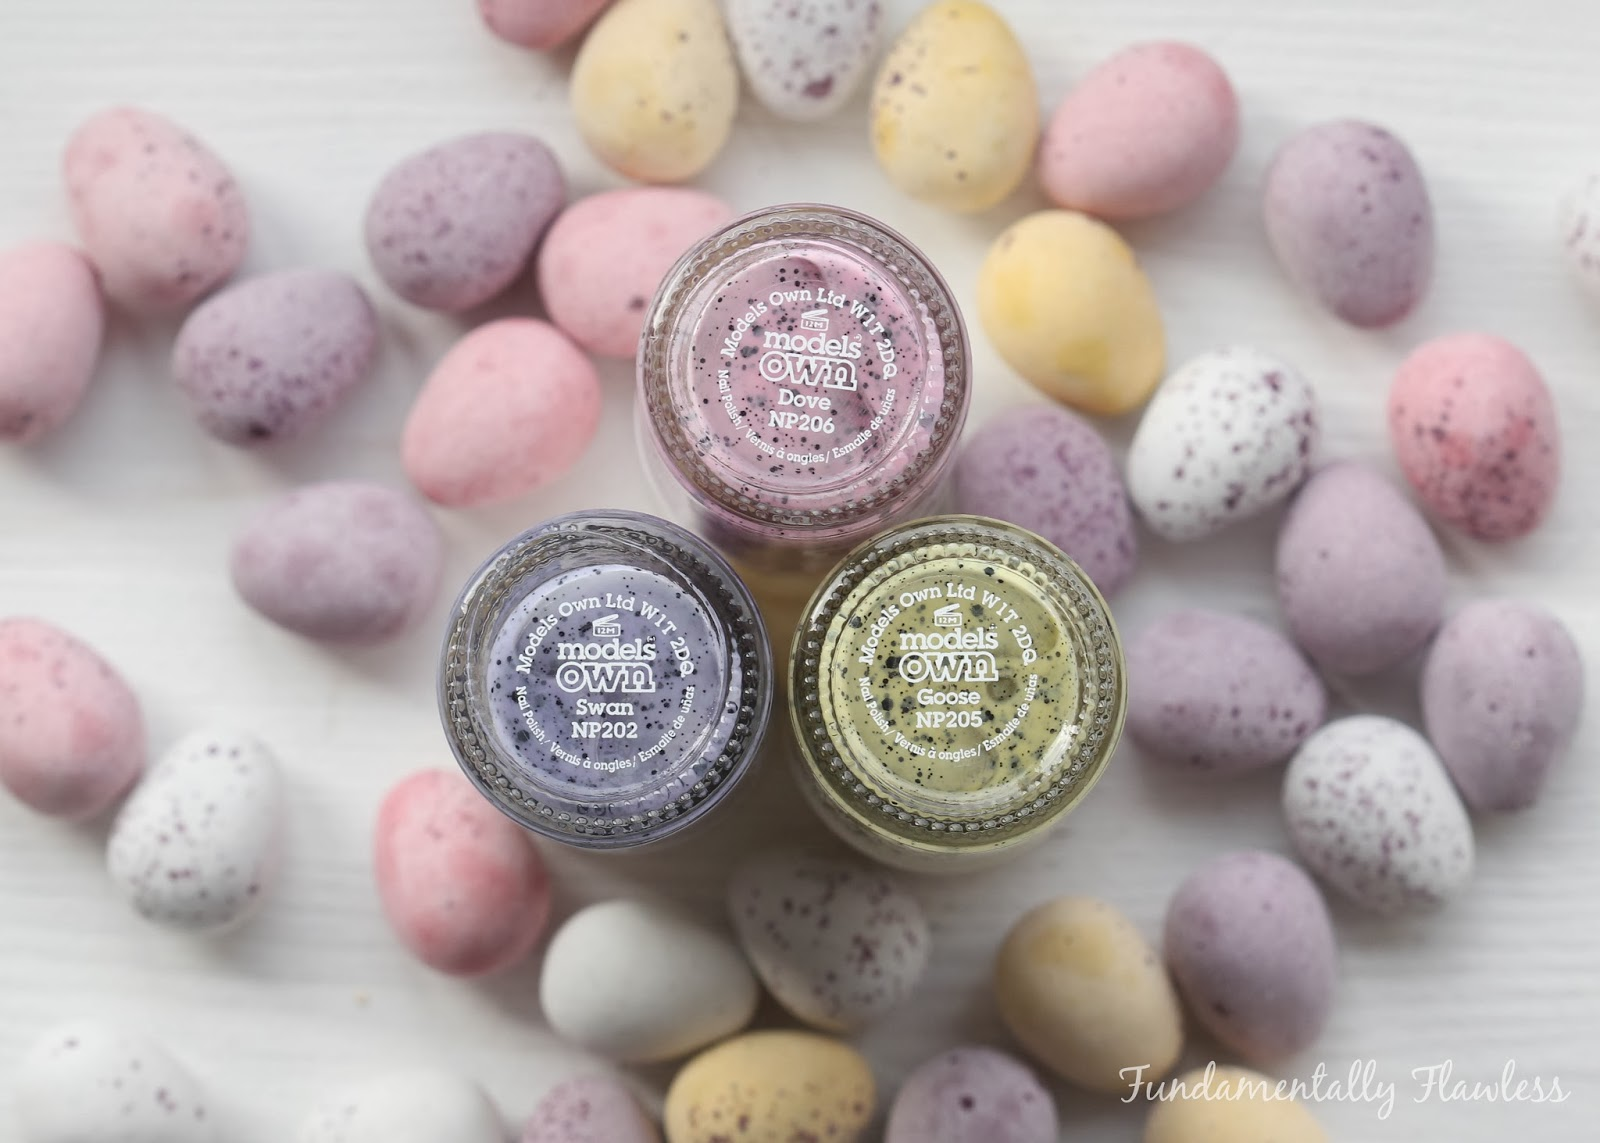 Models Own Speckled Eggs Collection